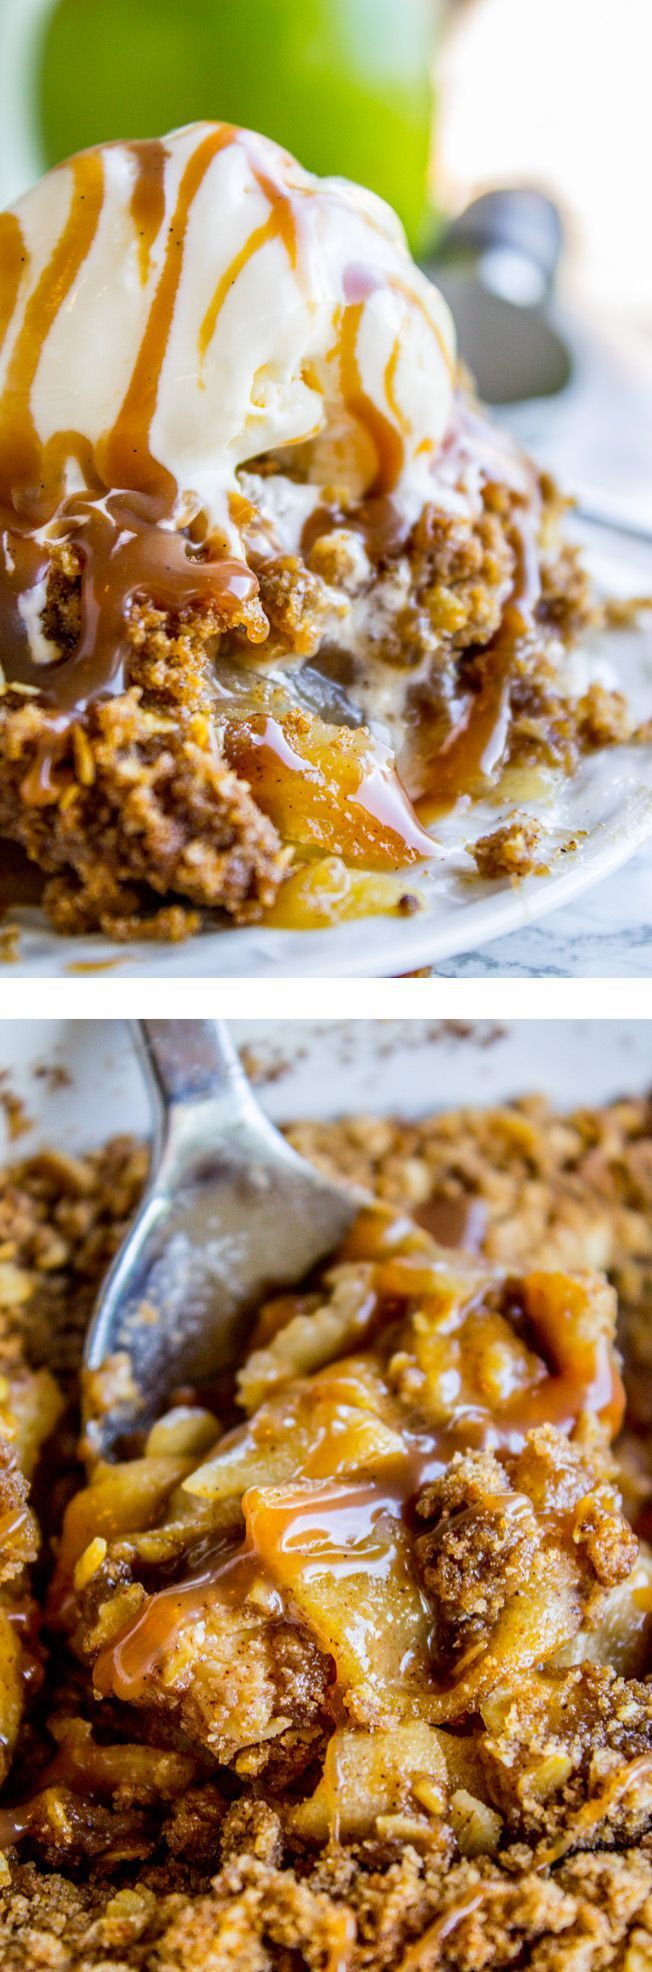 Apple Crisp, with a Ridiculous Amount of Streusel from The Food Charlatan. Am I the only one who thinks apple crisp never has enough streusel? I fixed that. Behold: the mother-load of streusel-y goodness right here. What better way to use up those fresh fall apples? Top with vanilla ice cream and My Favorite Caramel Sauce! You can also use peaches with this recipe in the summer time.